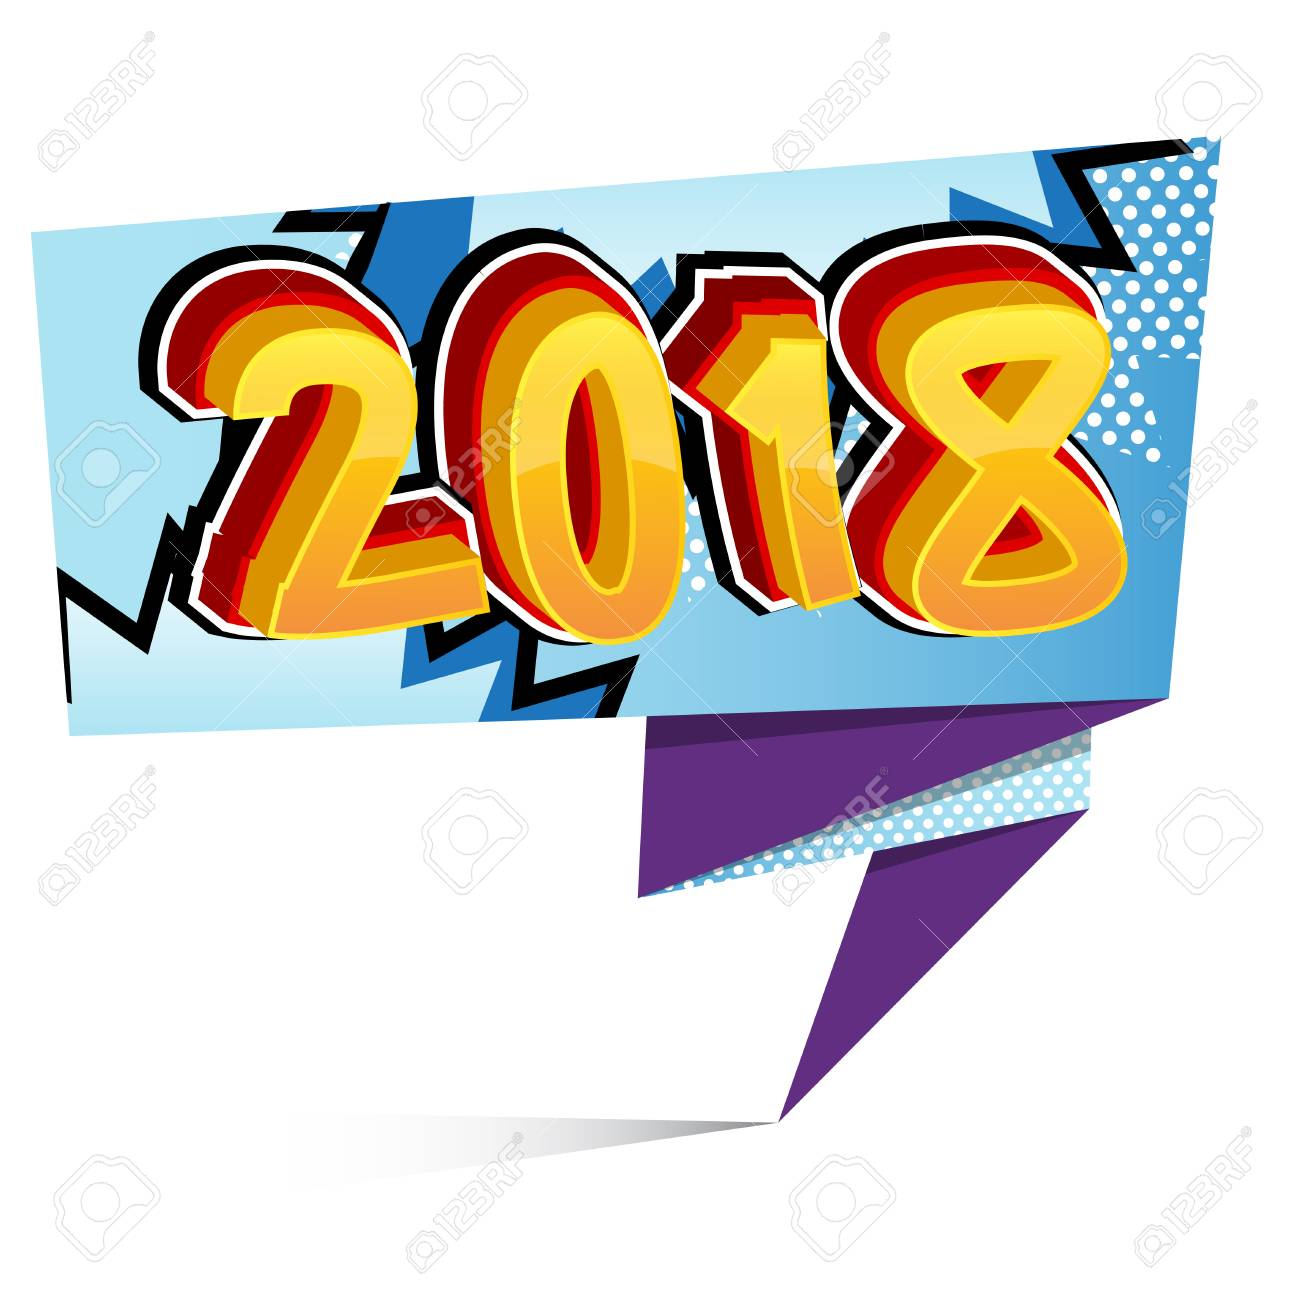 creative happy new year 2018 design card on comic book background rh 123rf com comic book vector png comic book vector border